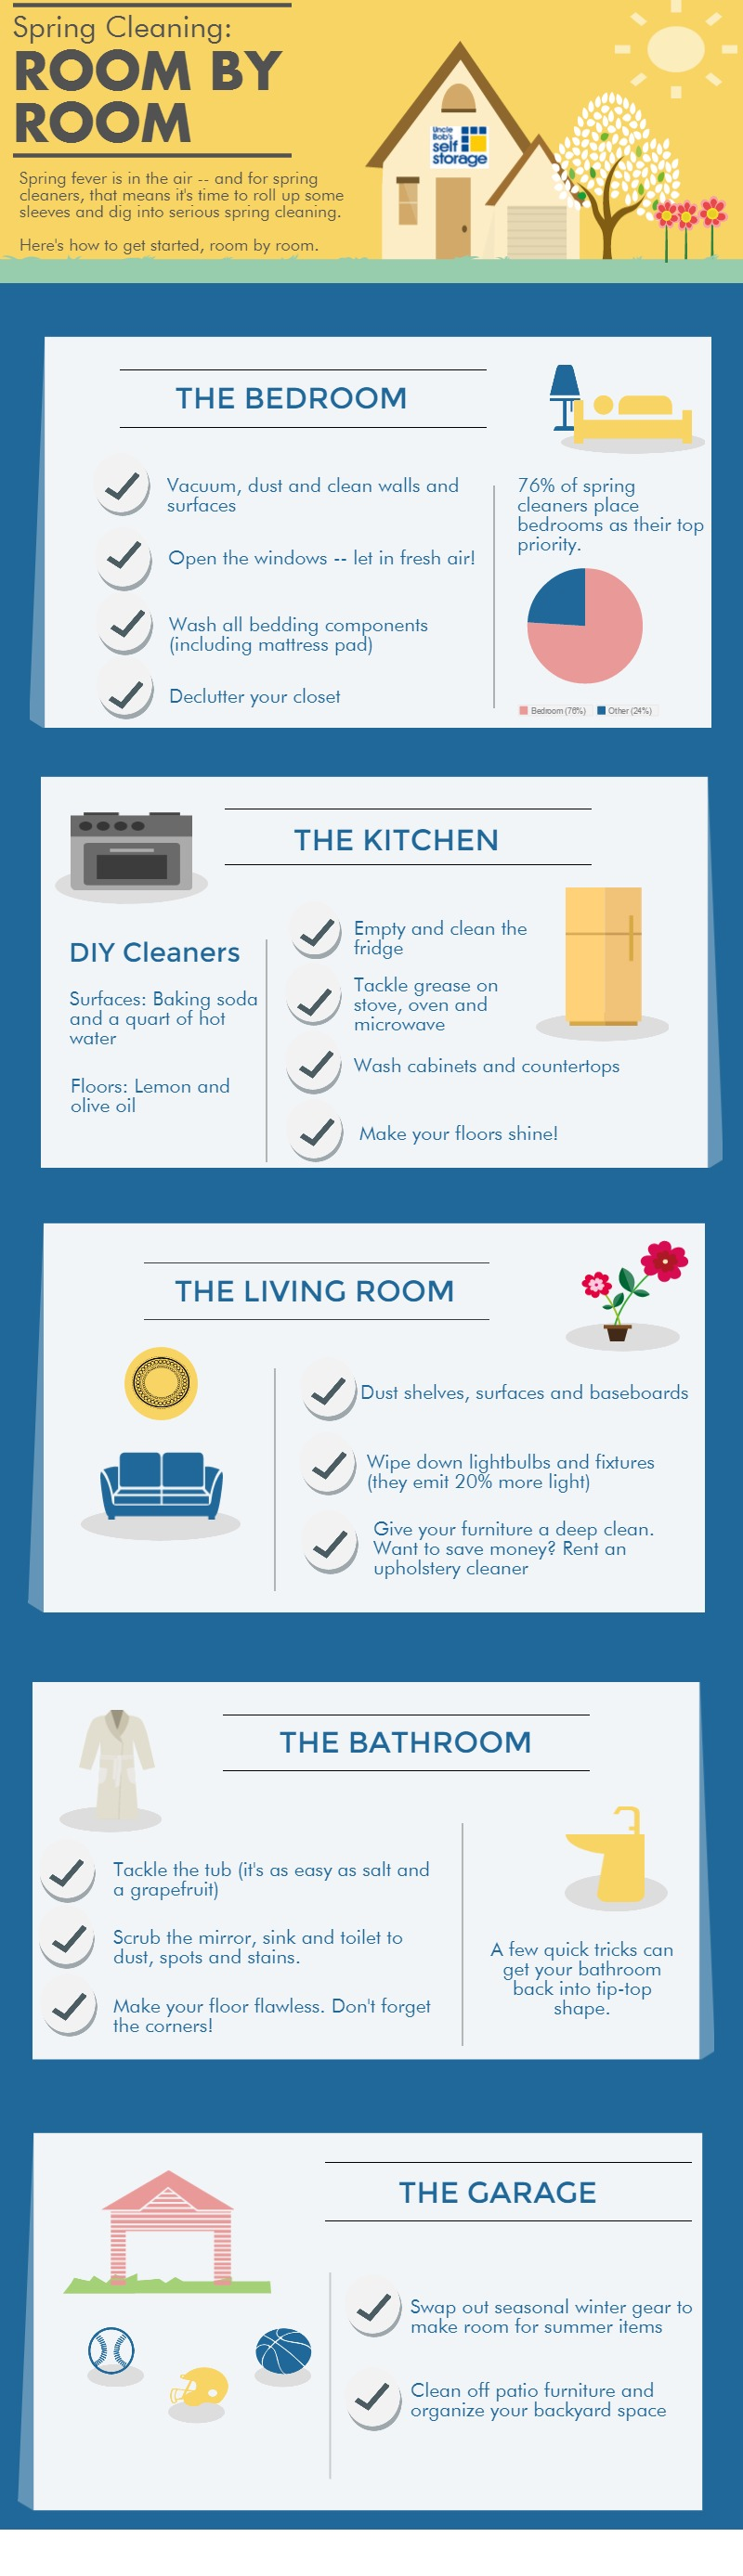 Spring Cleaning A RoombyRoom Checklist Life Storage Blog - Bedroom furniture checklist